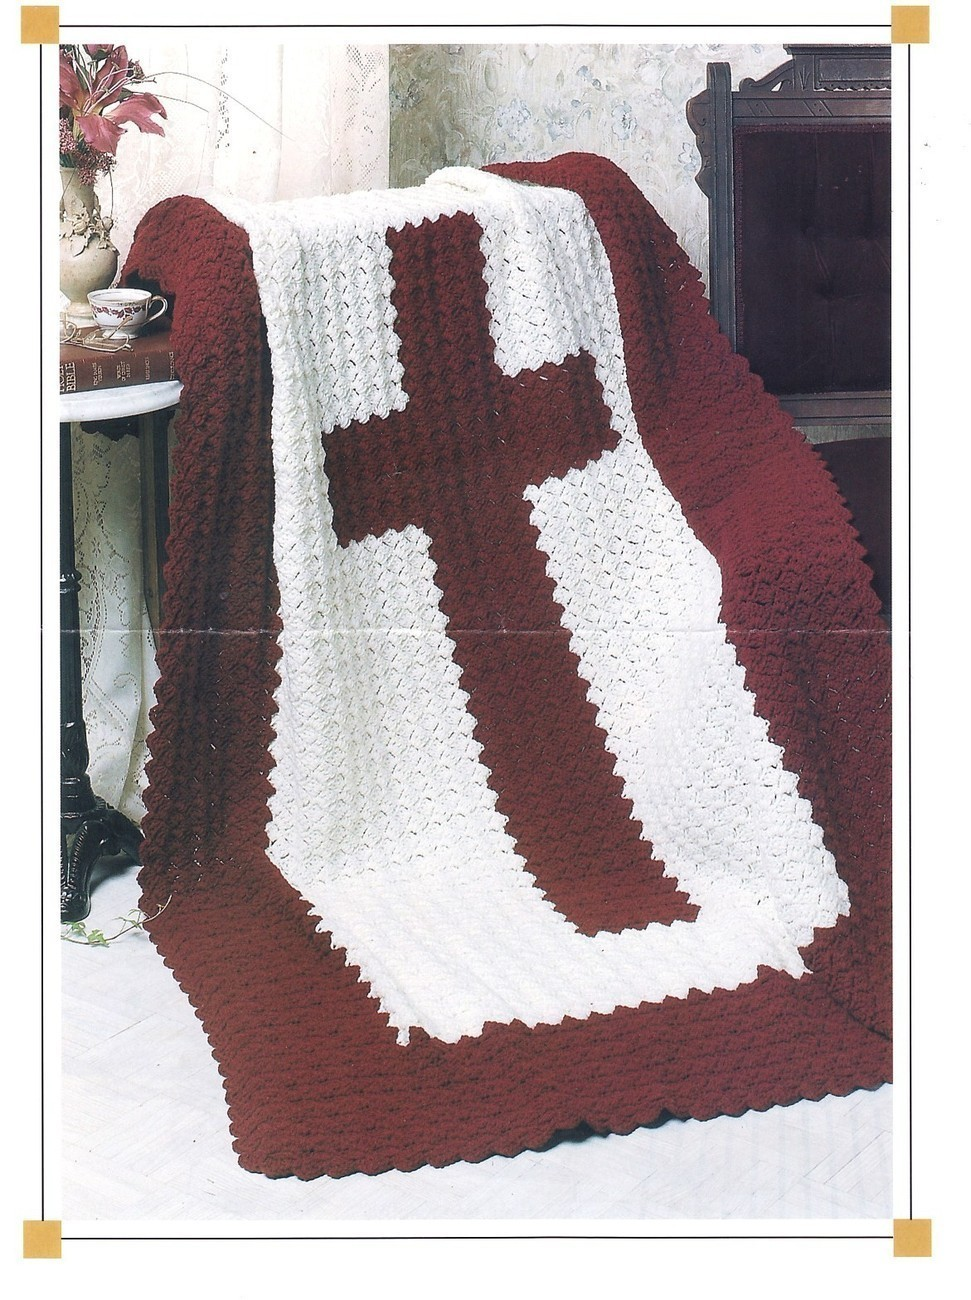 Crochet Cross Afghan Pattern Free : Cross Afghan Crochet Pattern Religious Blanket Throw - Afghans